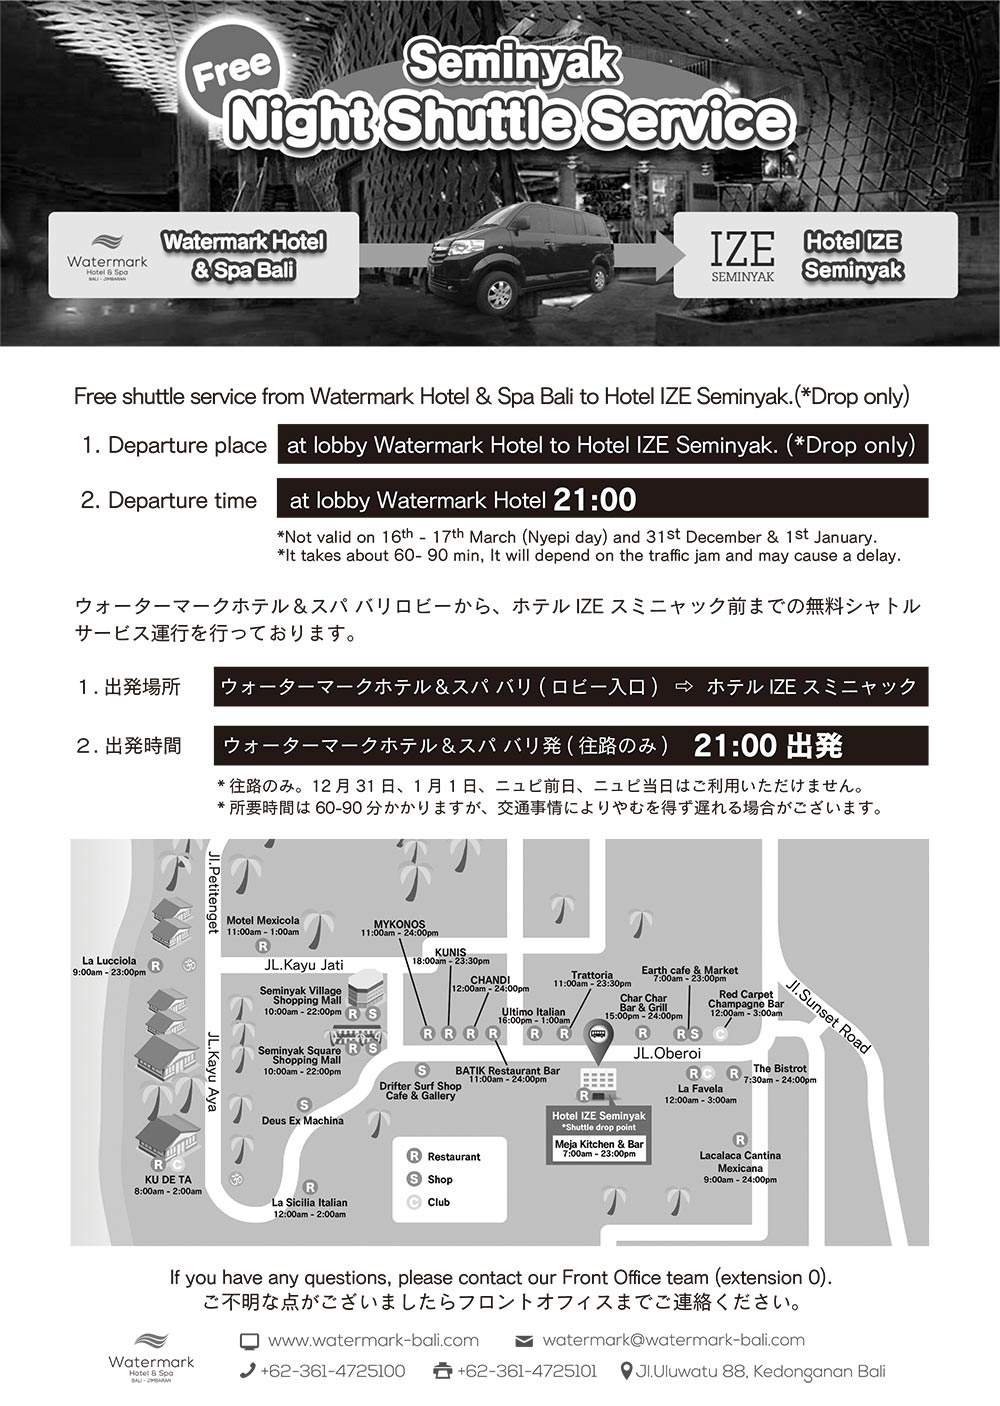 Seminyak Night Shuttle Service